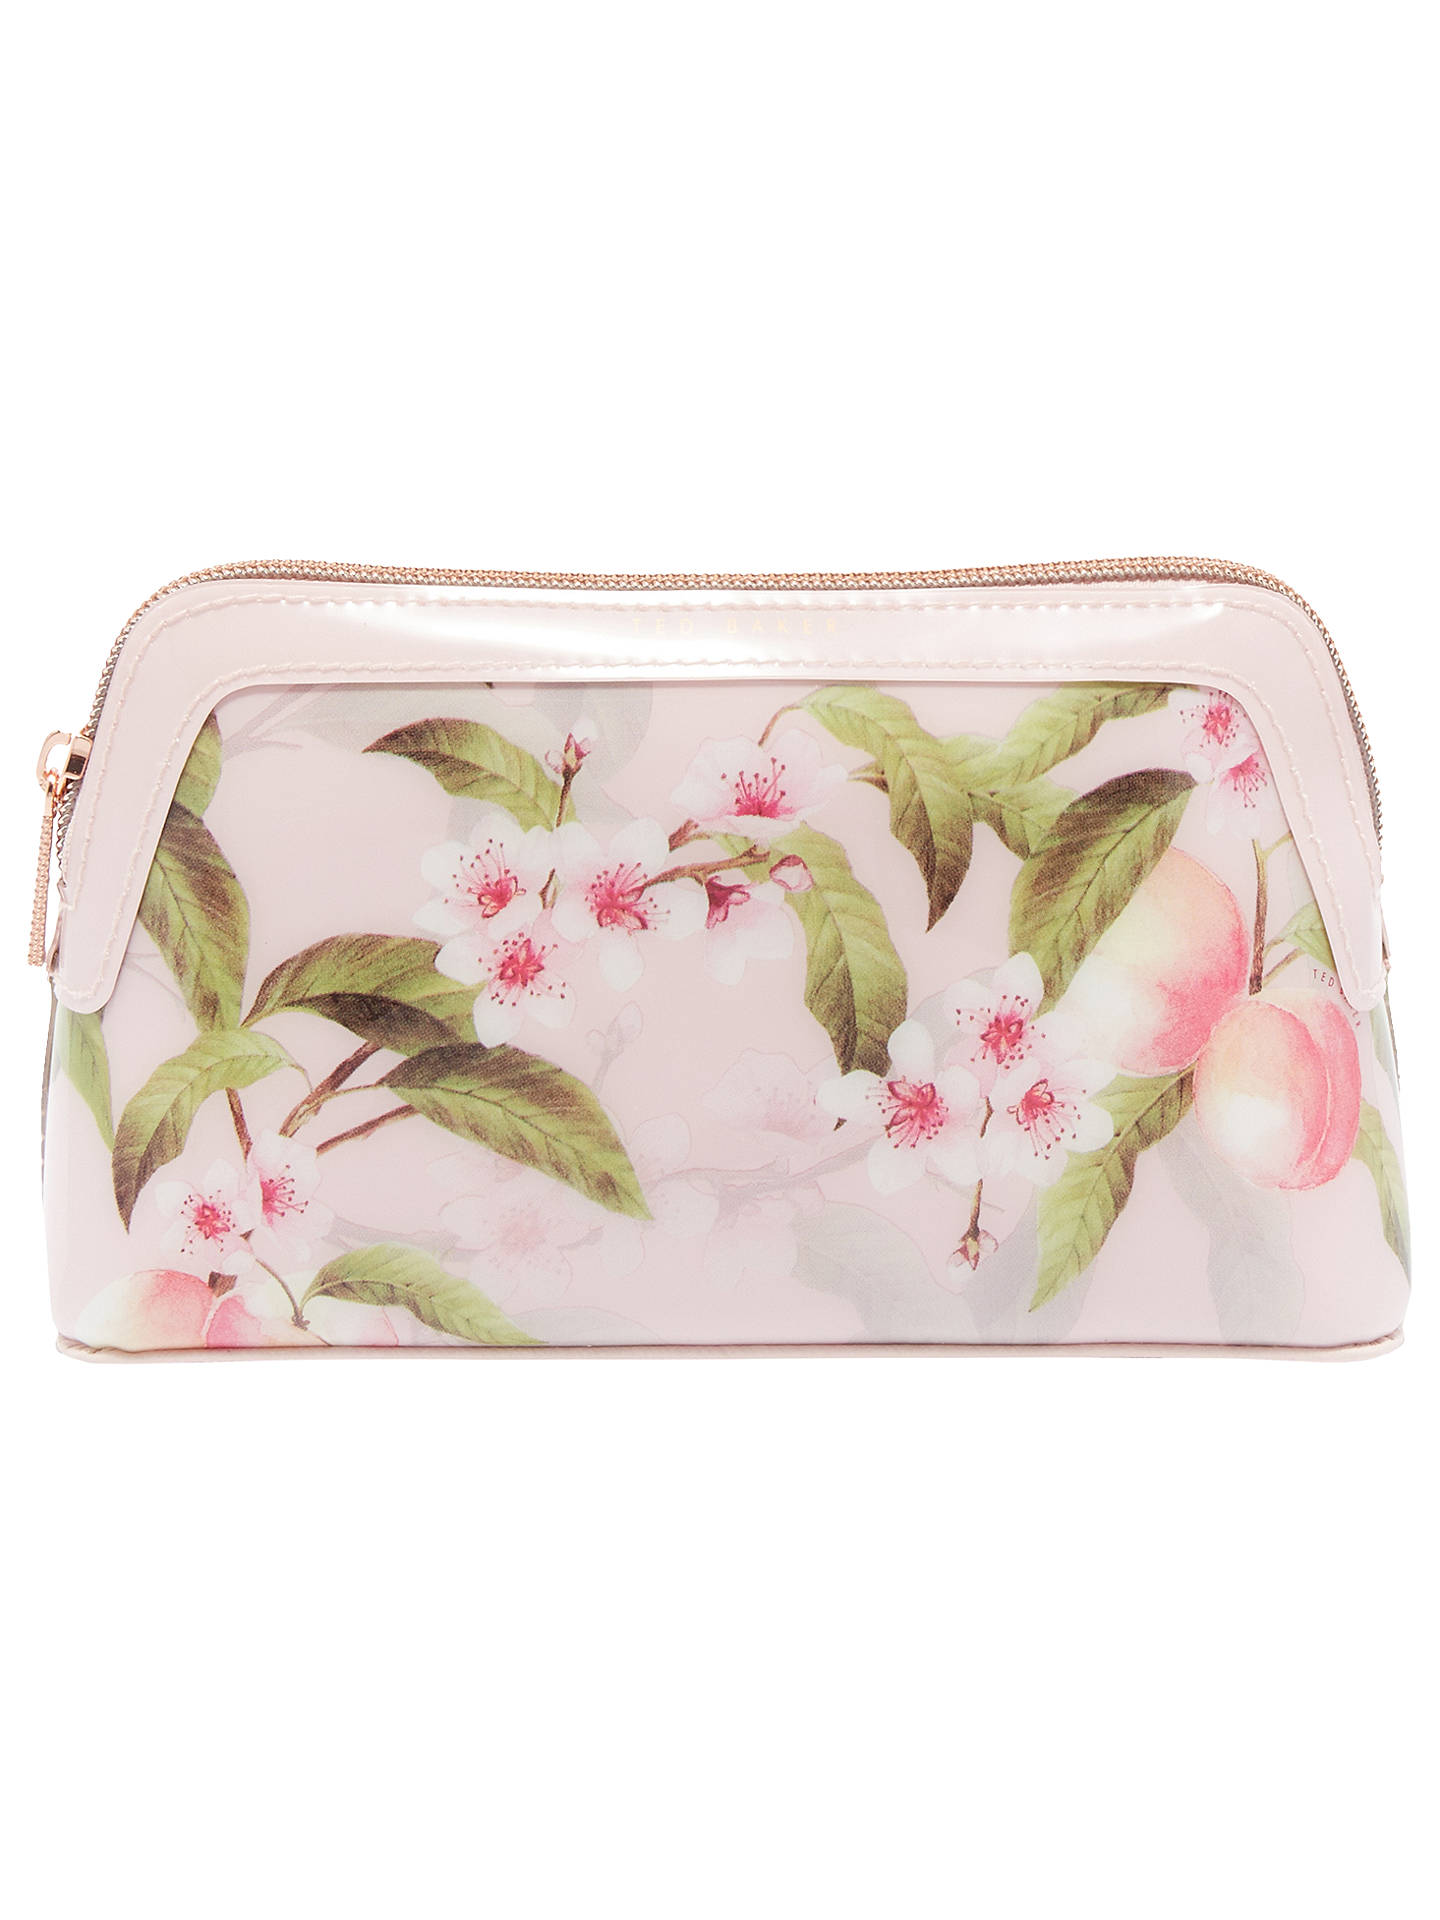 015e29c8a8a1b1 Buy Ted Baker Blondel Peach Blossom Makeup Bag